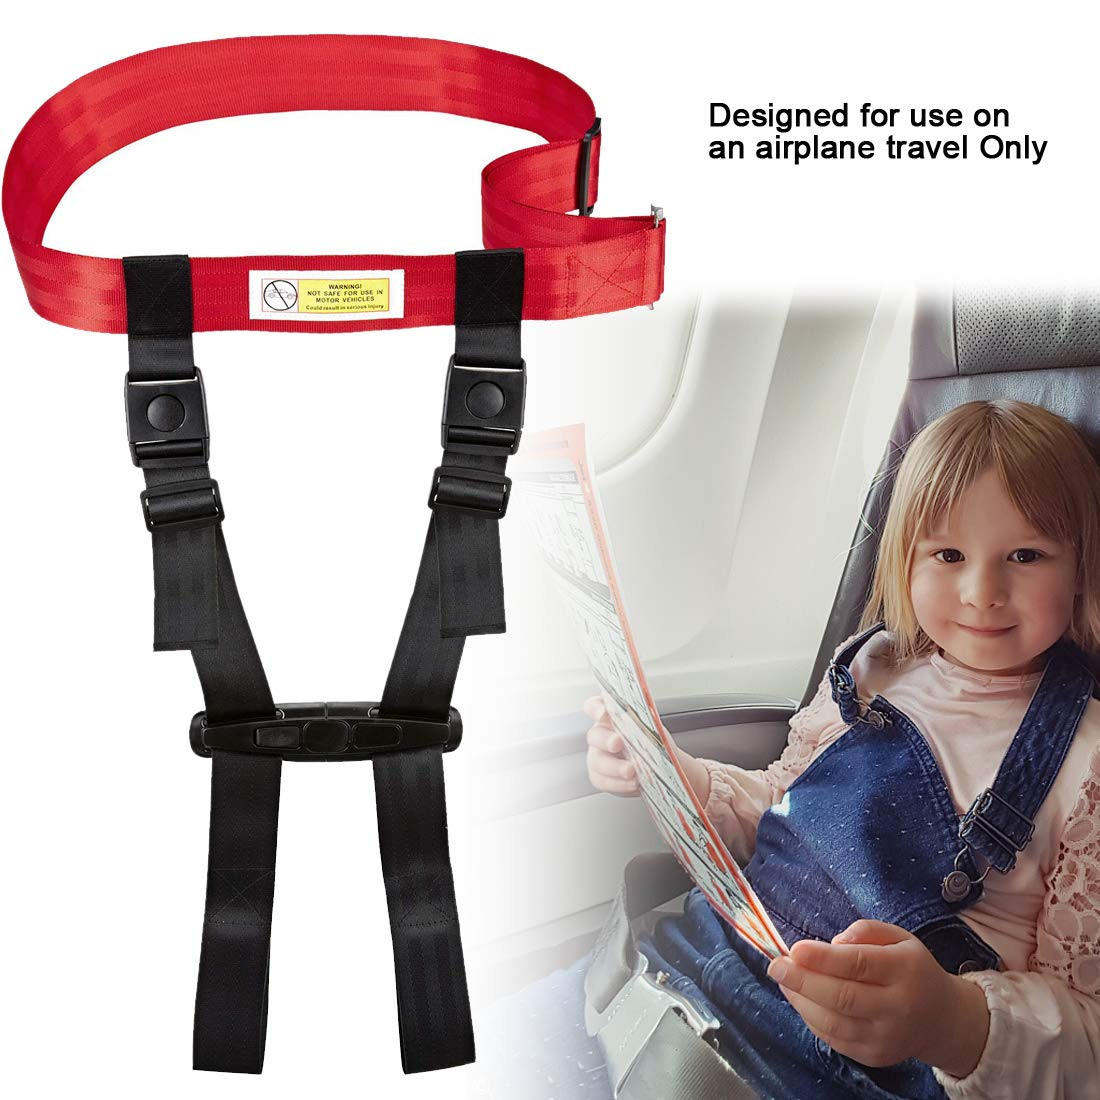 Child Airplane Travel Harness Safety Clip Strap Restraint System for Baby, Toddlers & Kids- for Airplane Travel Use Only by Together-life (Image #5)